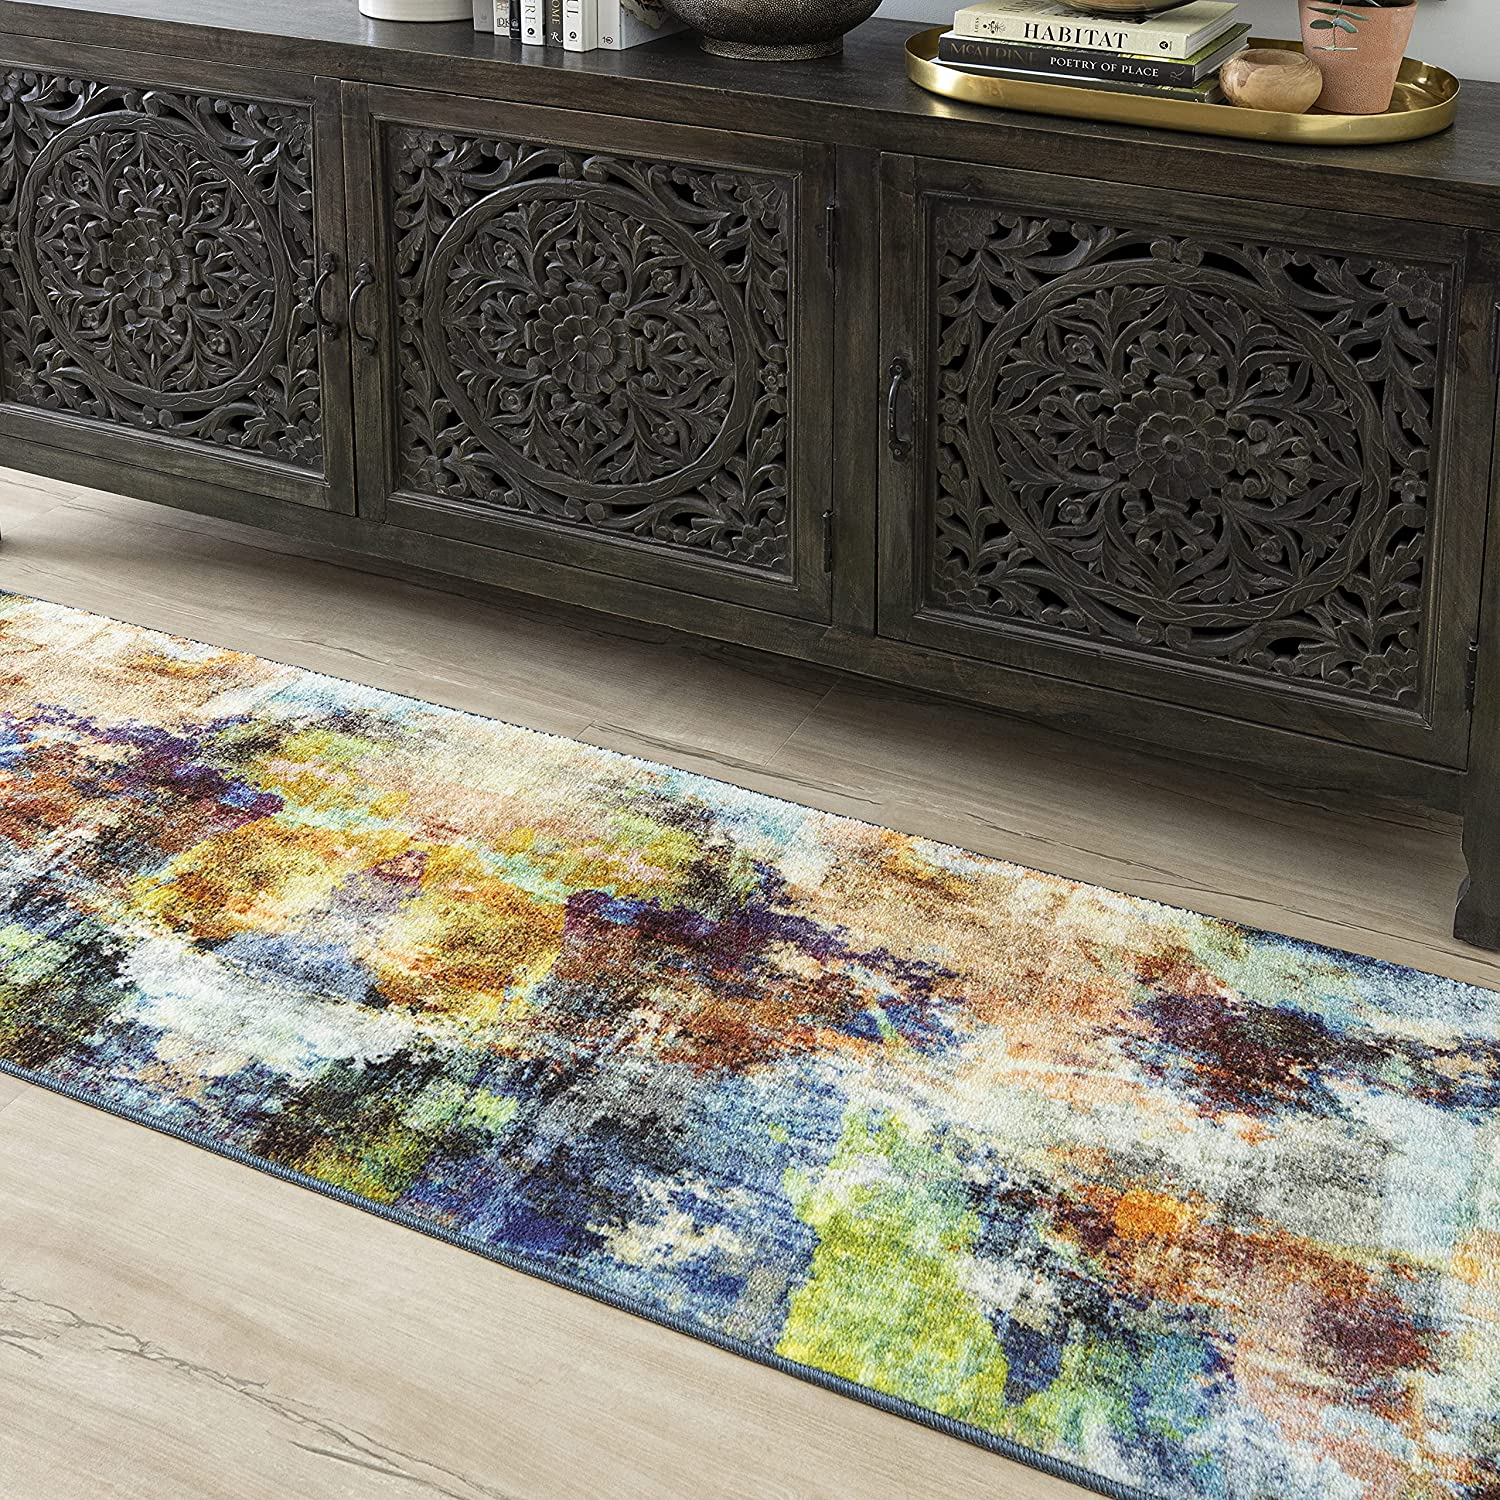 Mohawk Home Decollage Area Rug X 4 Our shop most popular years warranty 8' 2' Multi